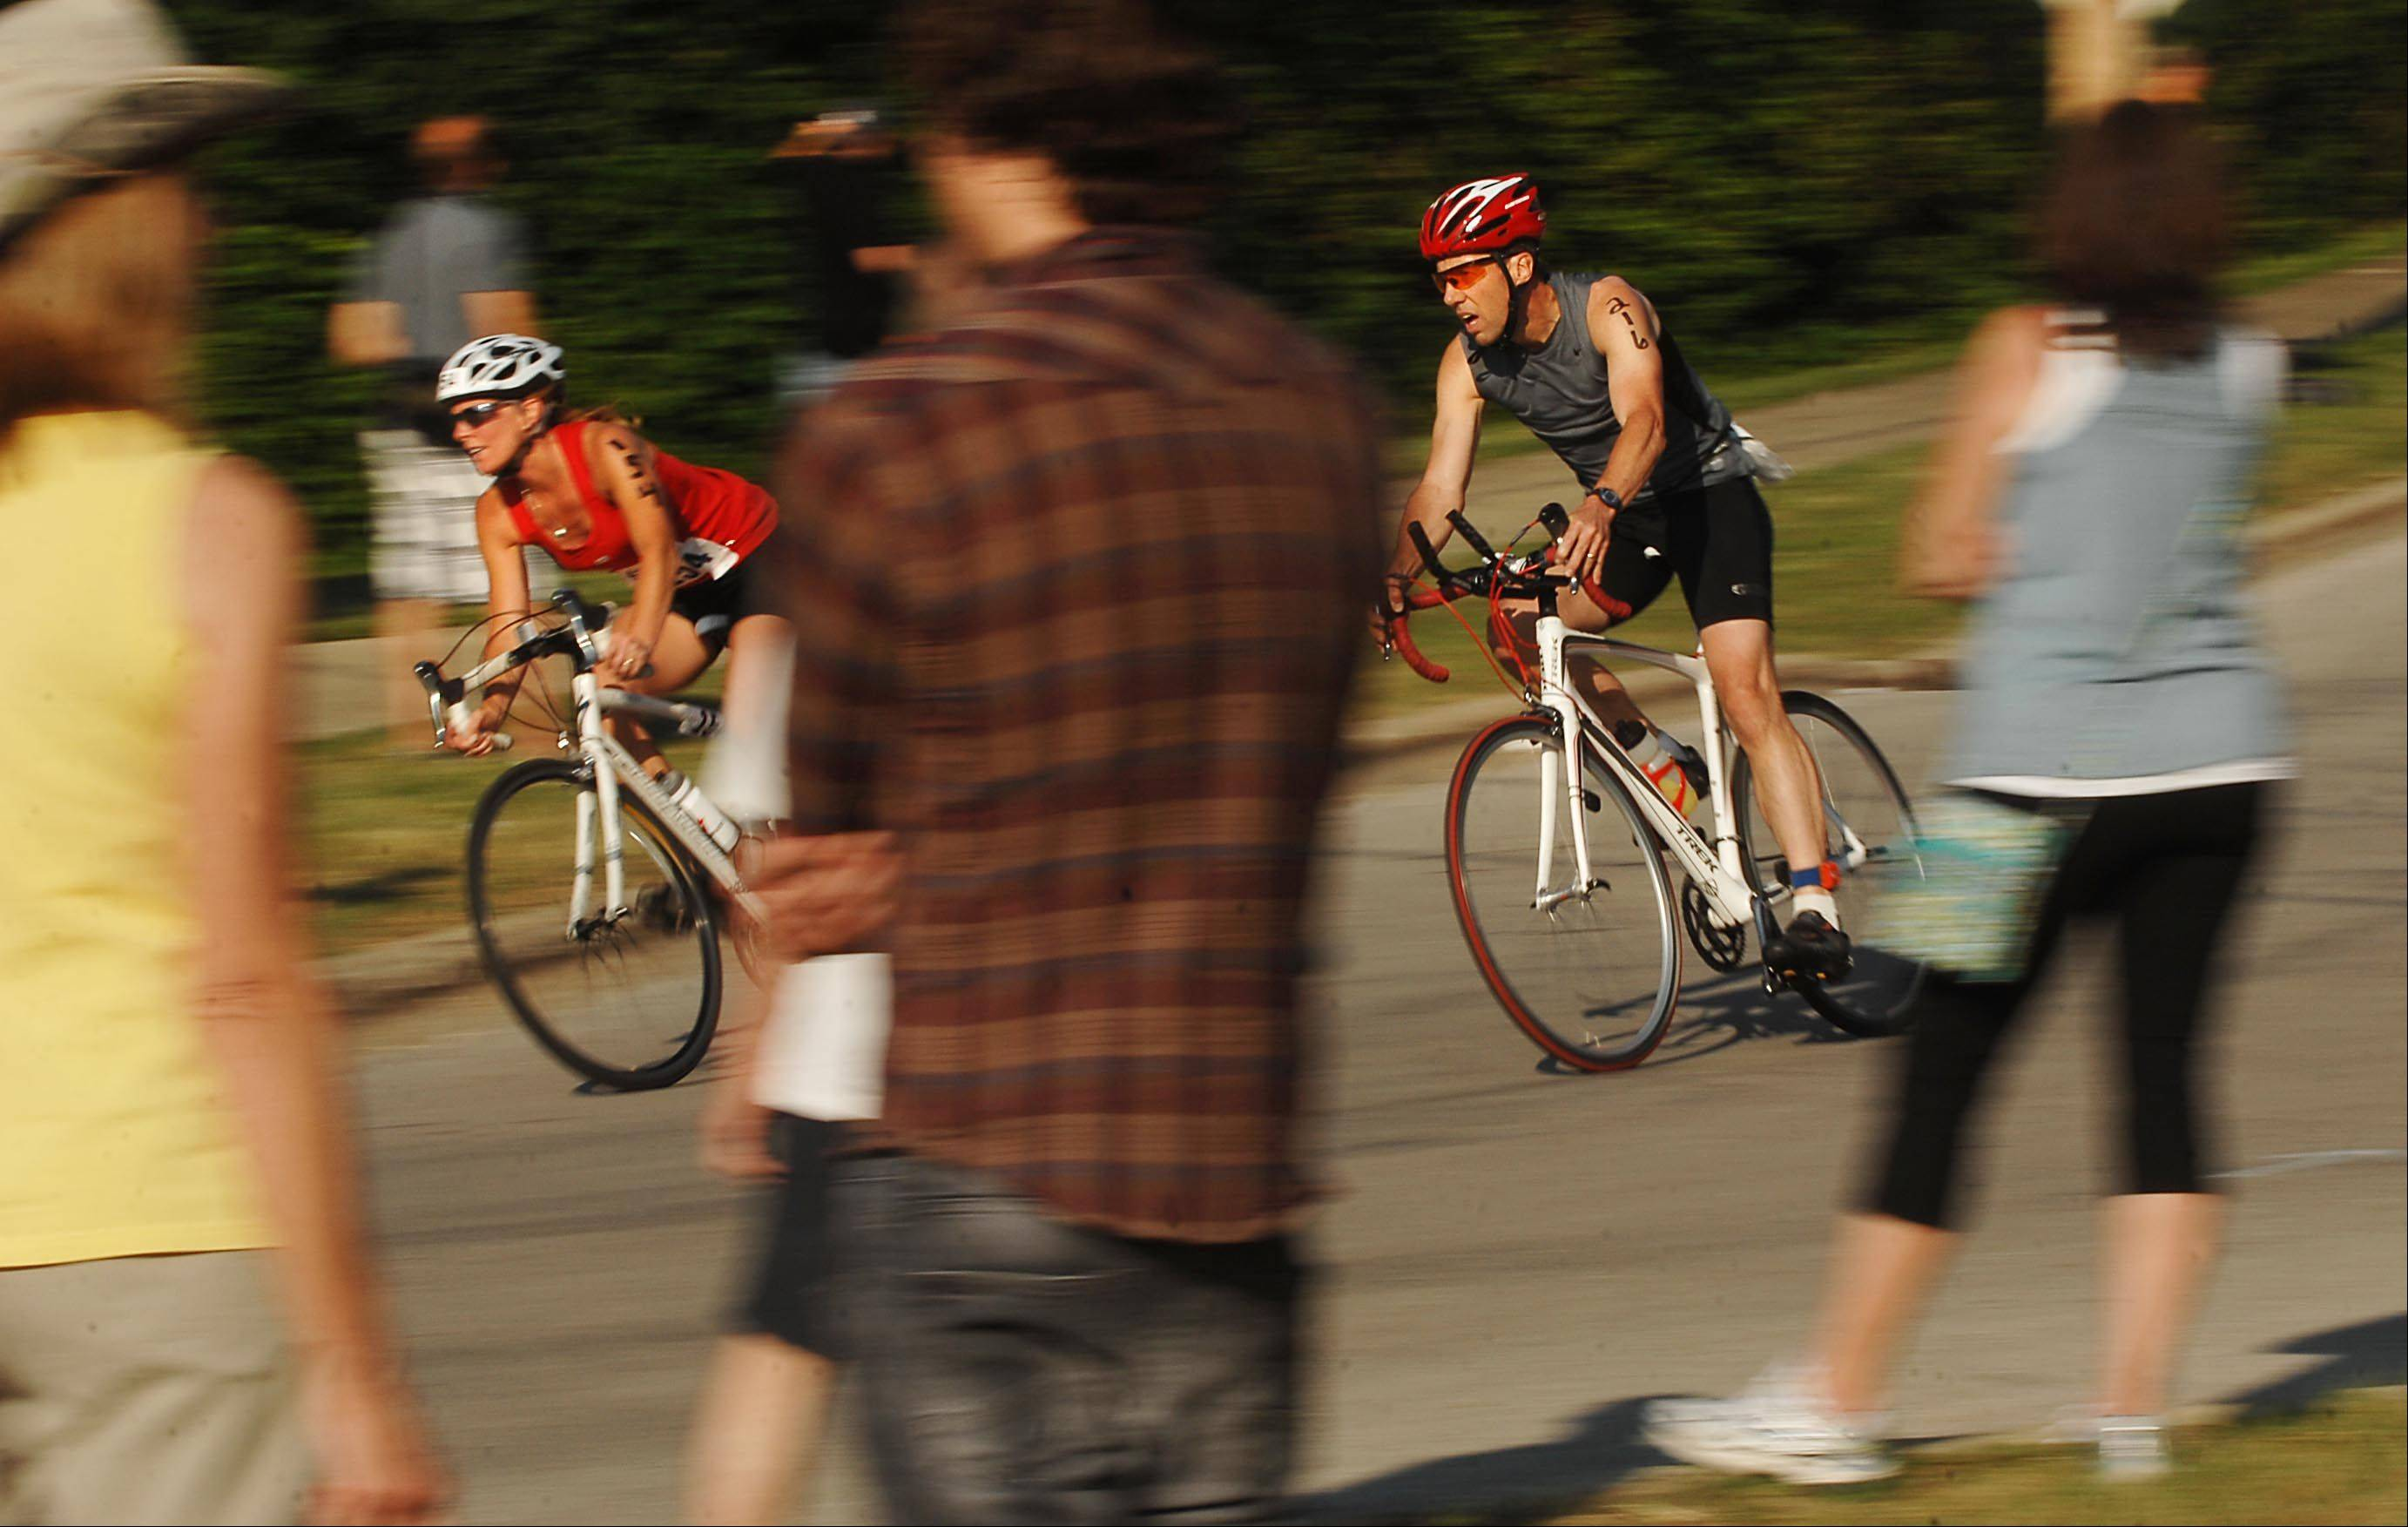 Racers approach the finish of the 14-mile bike ride portion of last year's Batavia Triathlon and Duathlon. Entrants finished with a 4-mile run.